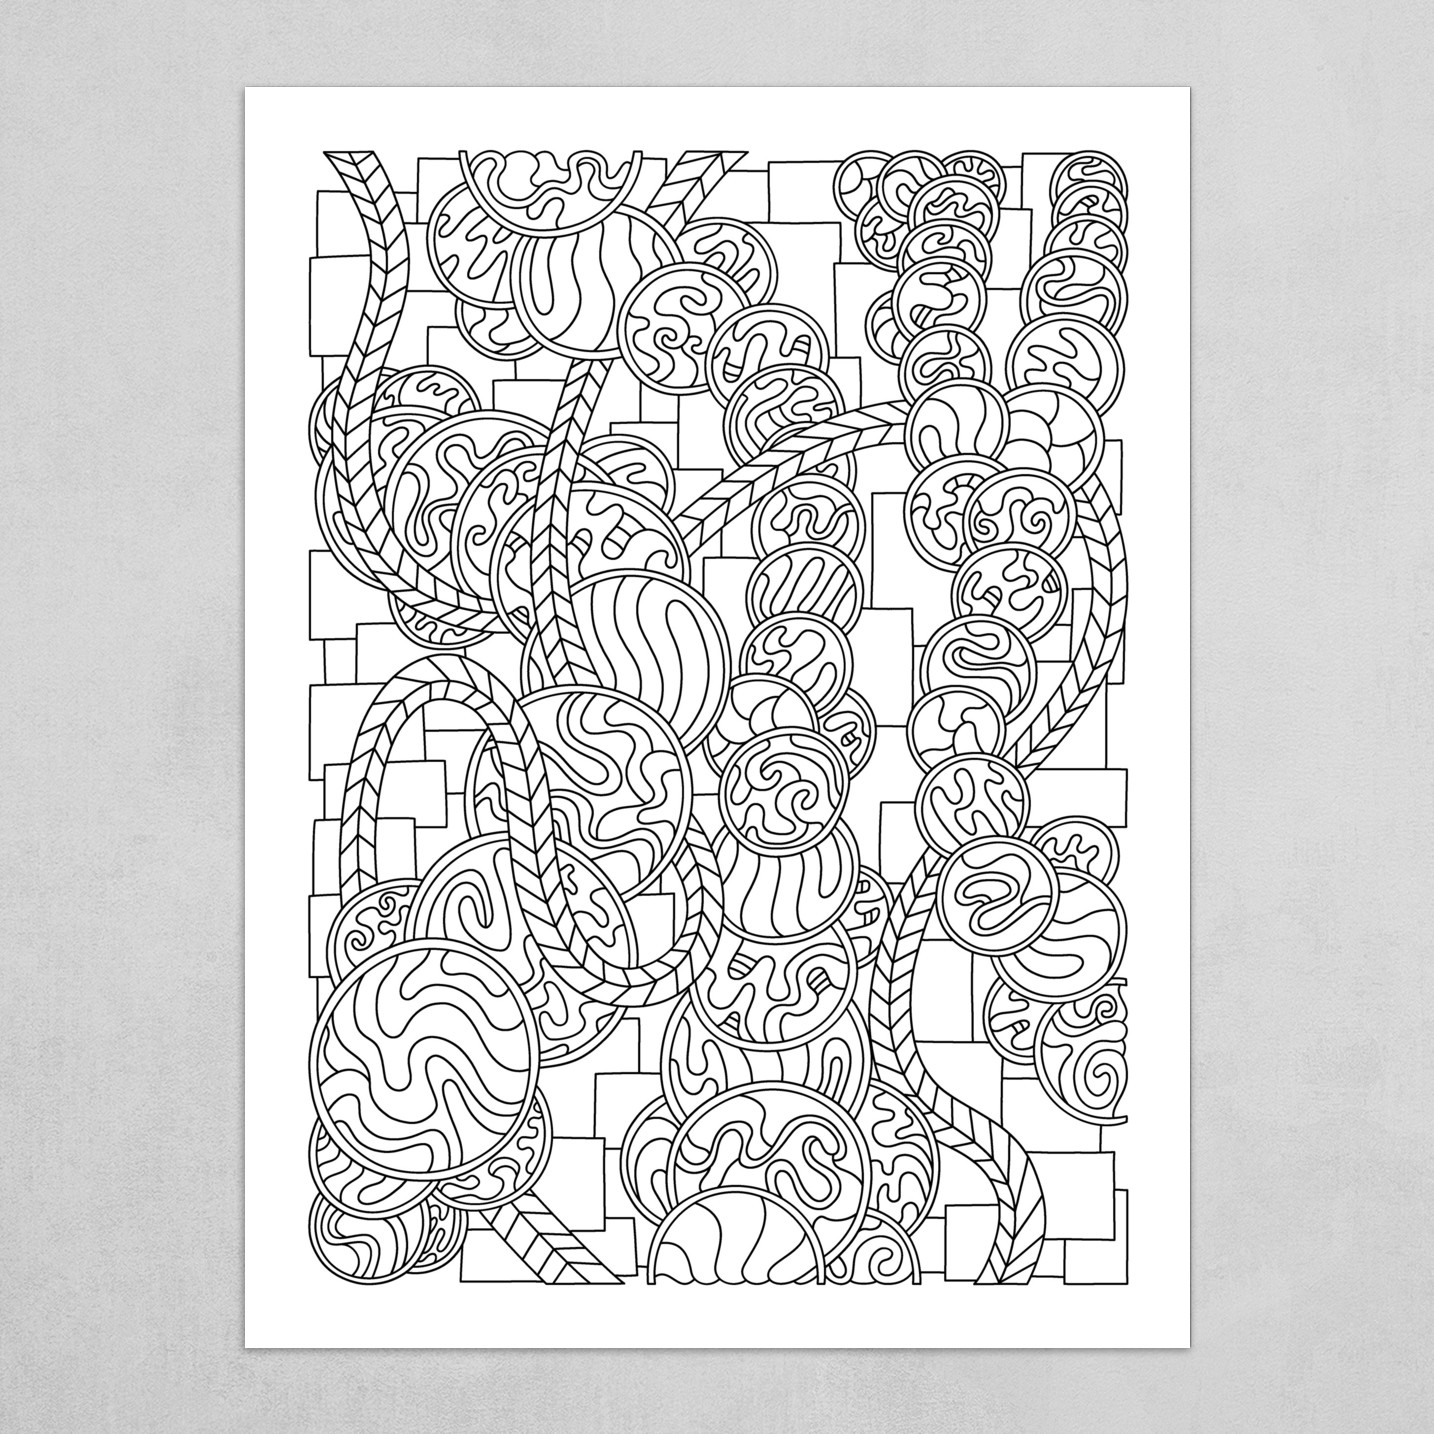 Wandering Abstract Line Art 43: Black & White